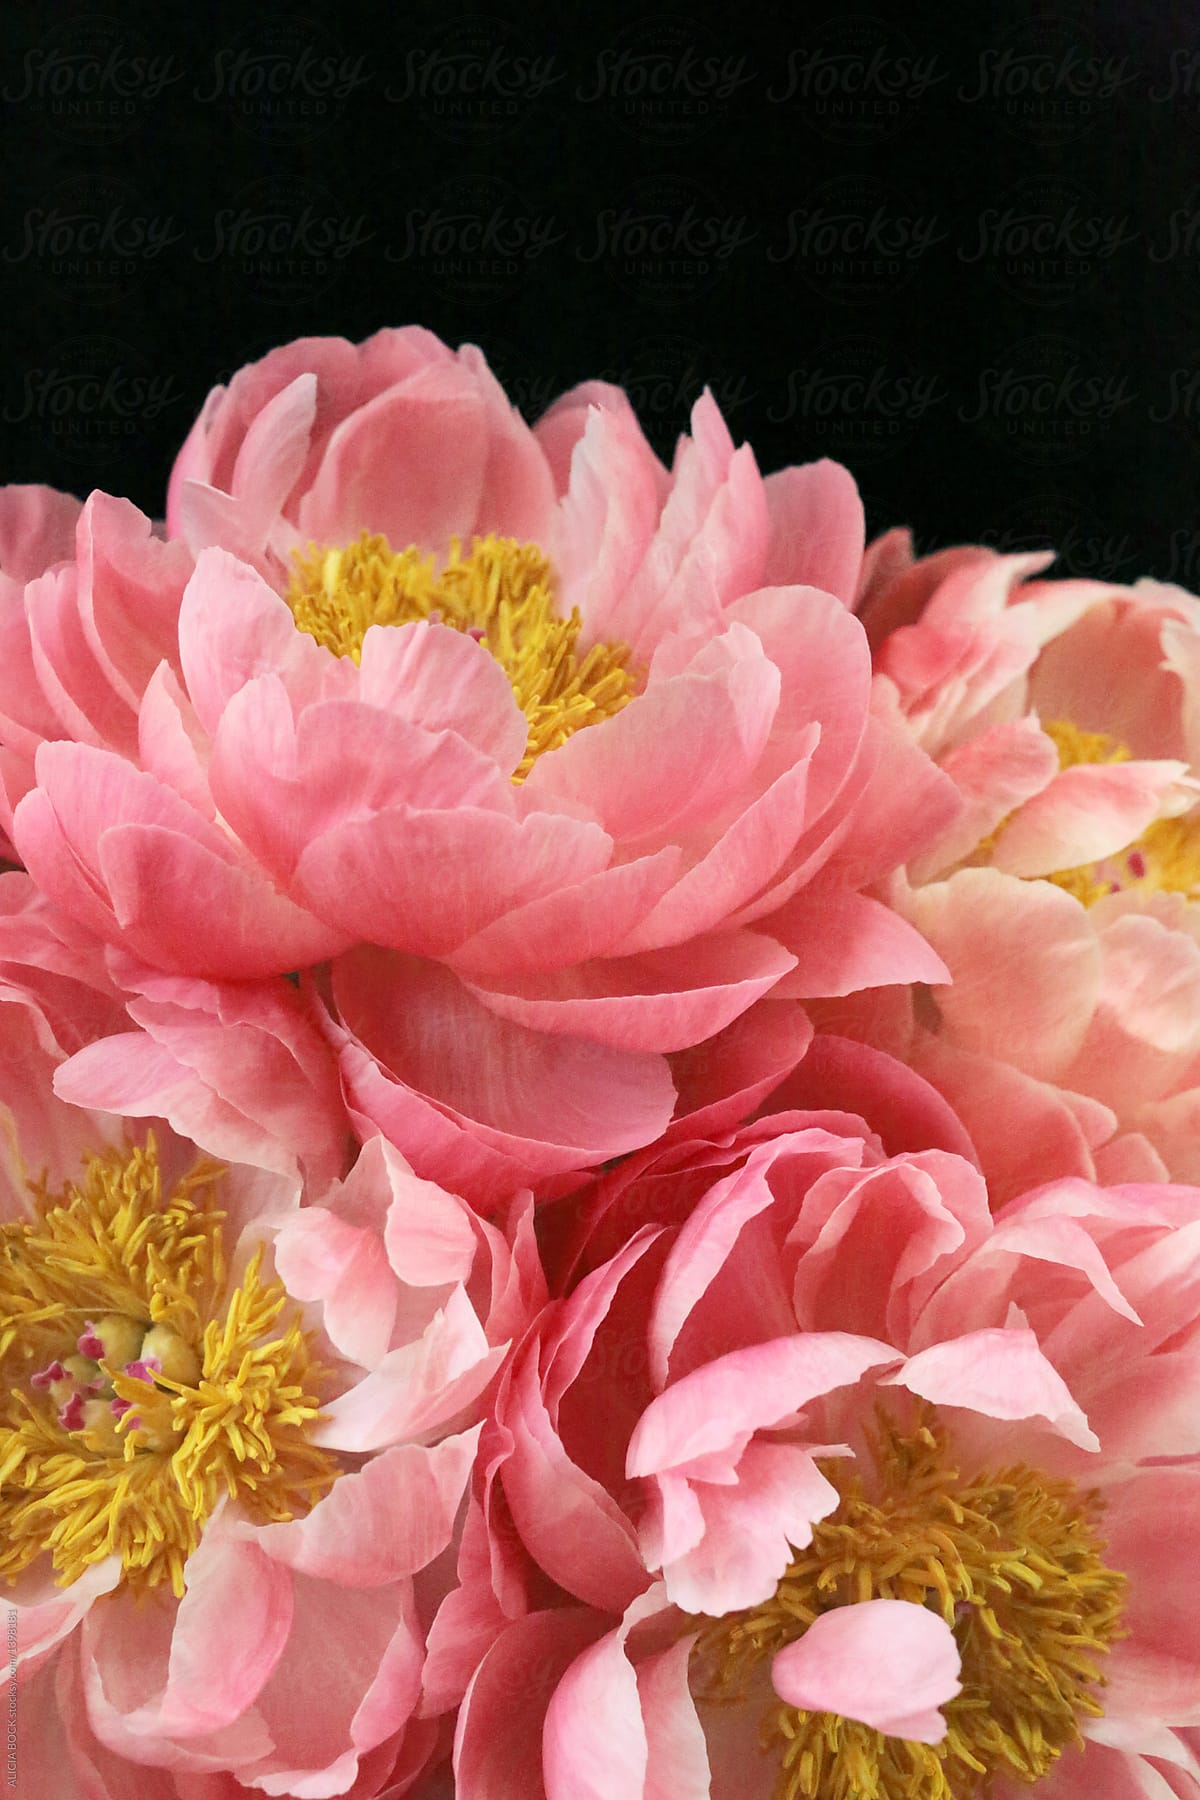 Stunning Pink Peony Flowers Against A Black Background Stocksy United